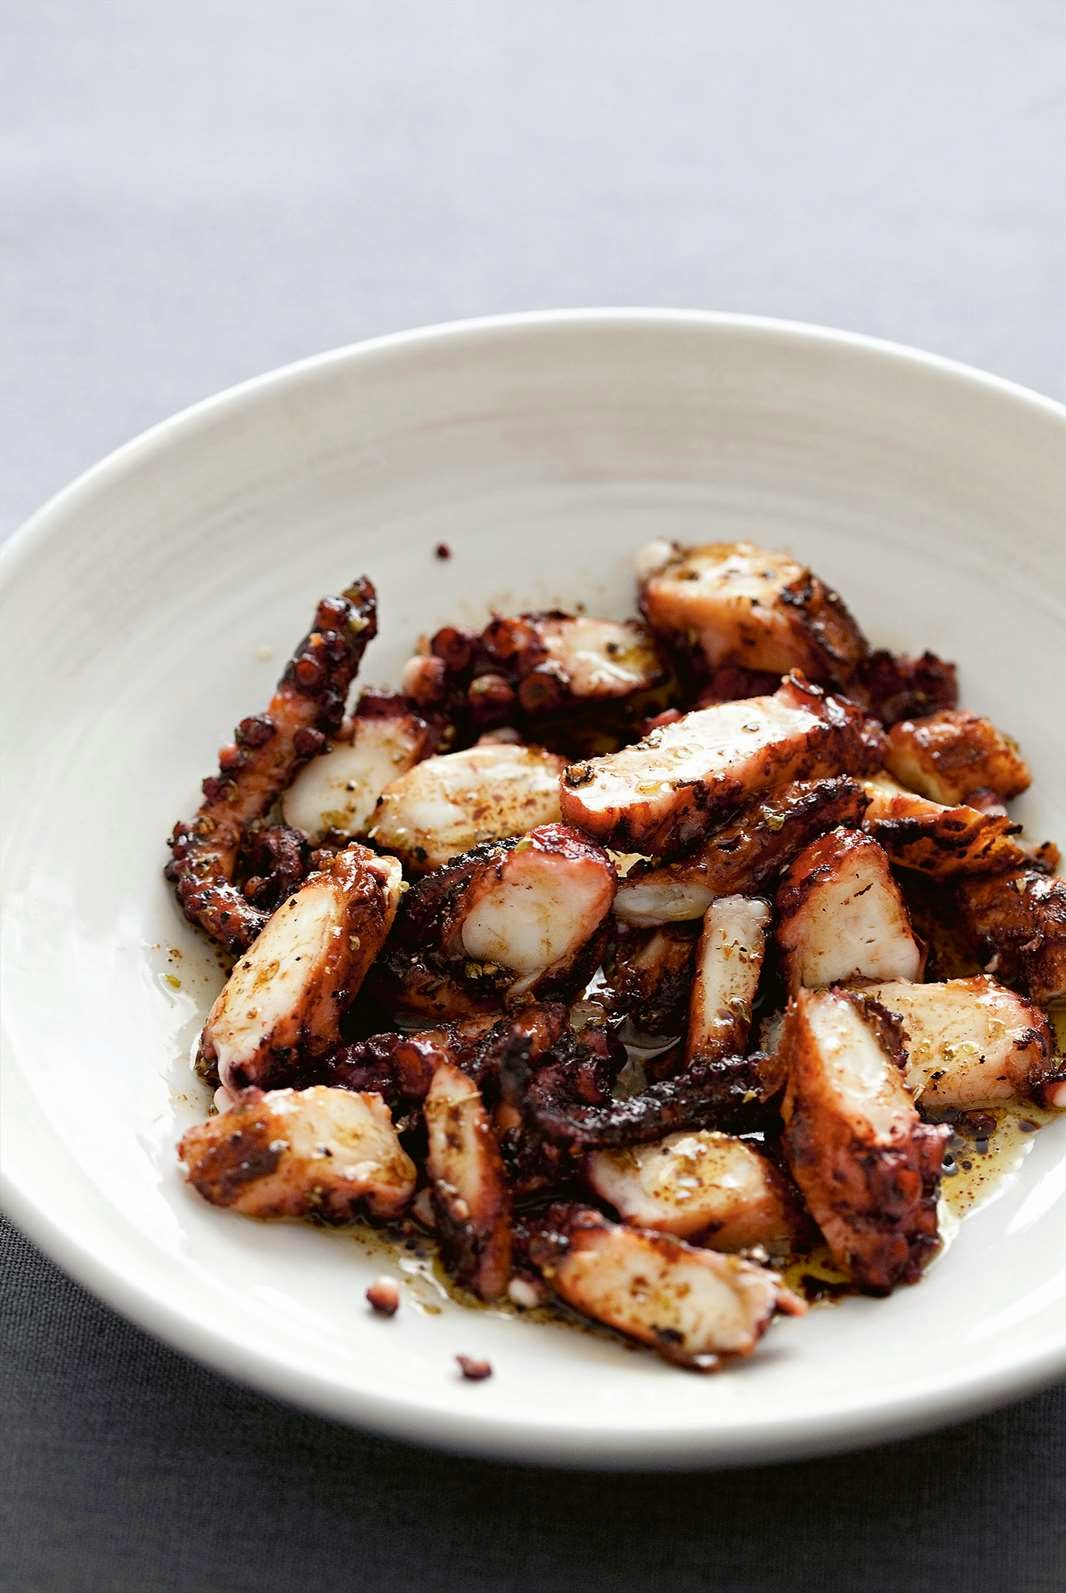 Recipe: Chargrilled octopus, lushed in extra virgin olive oil